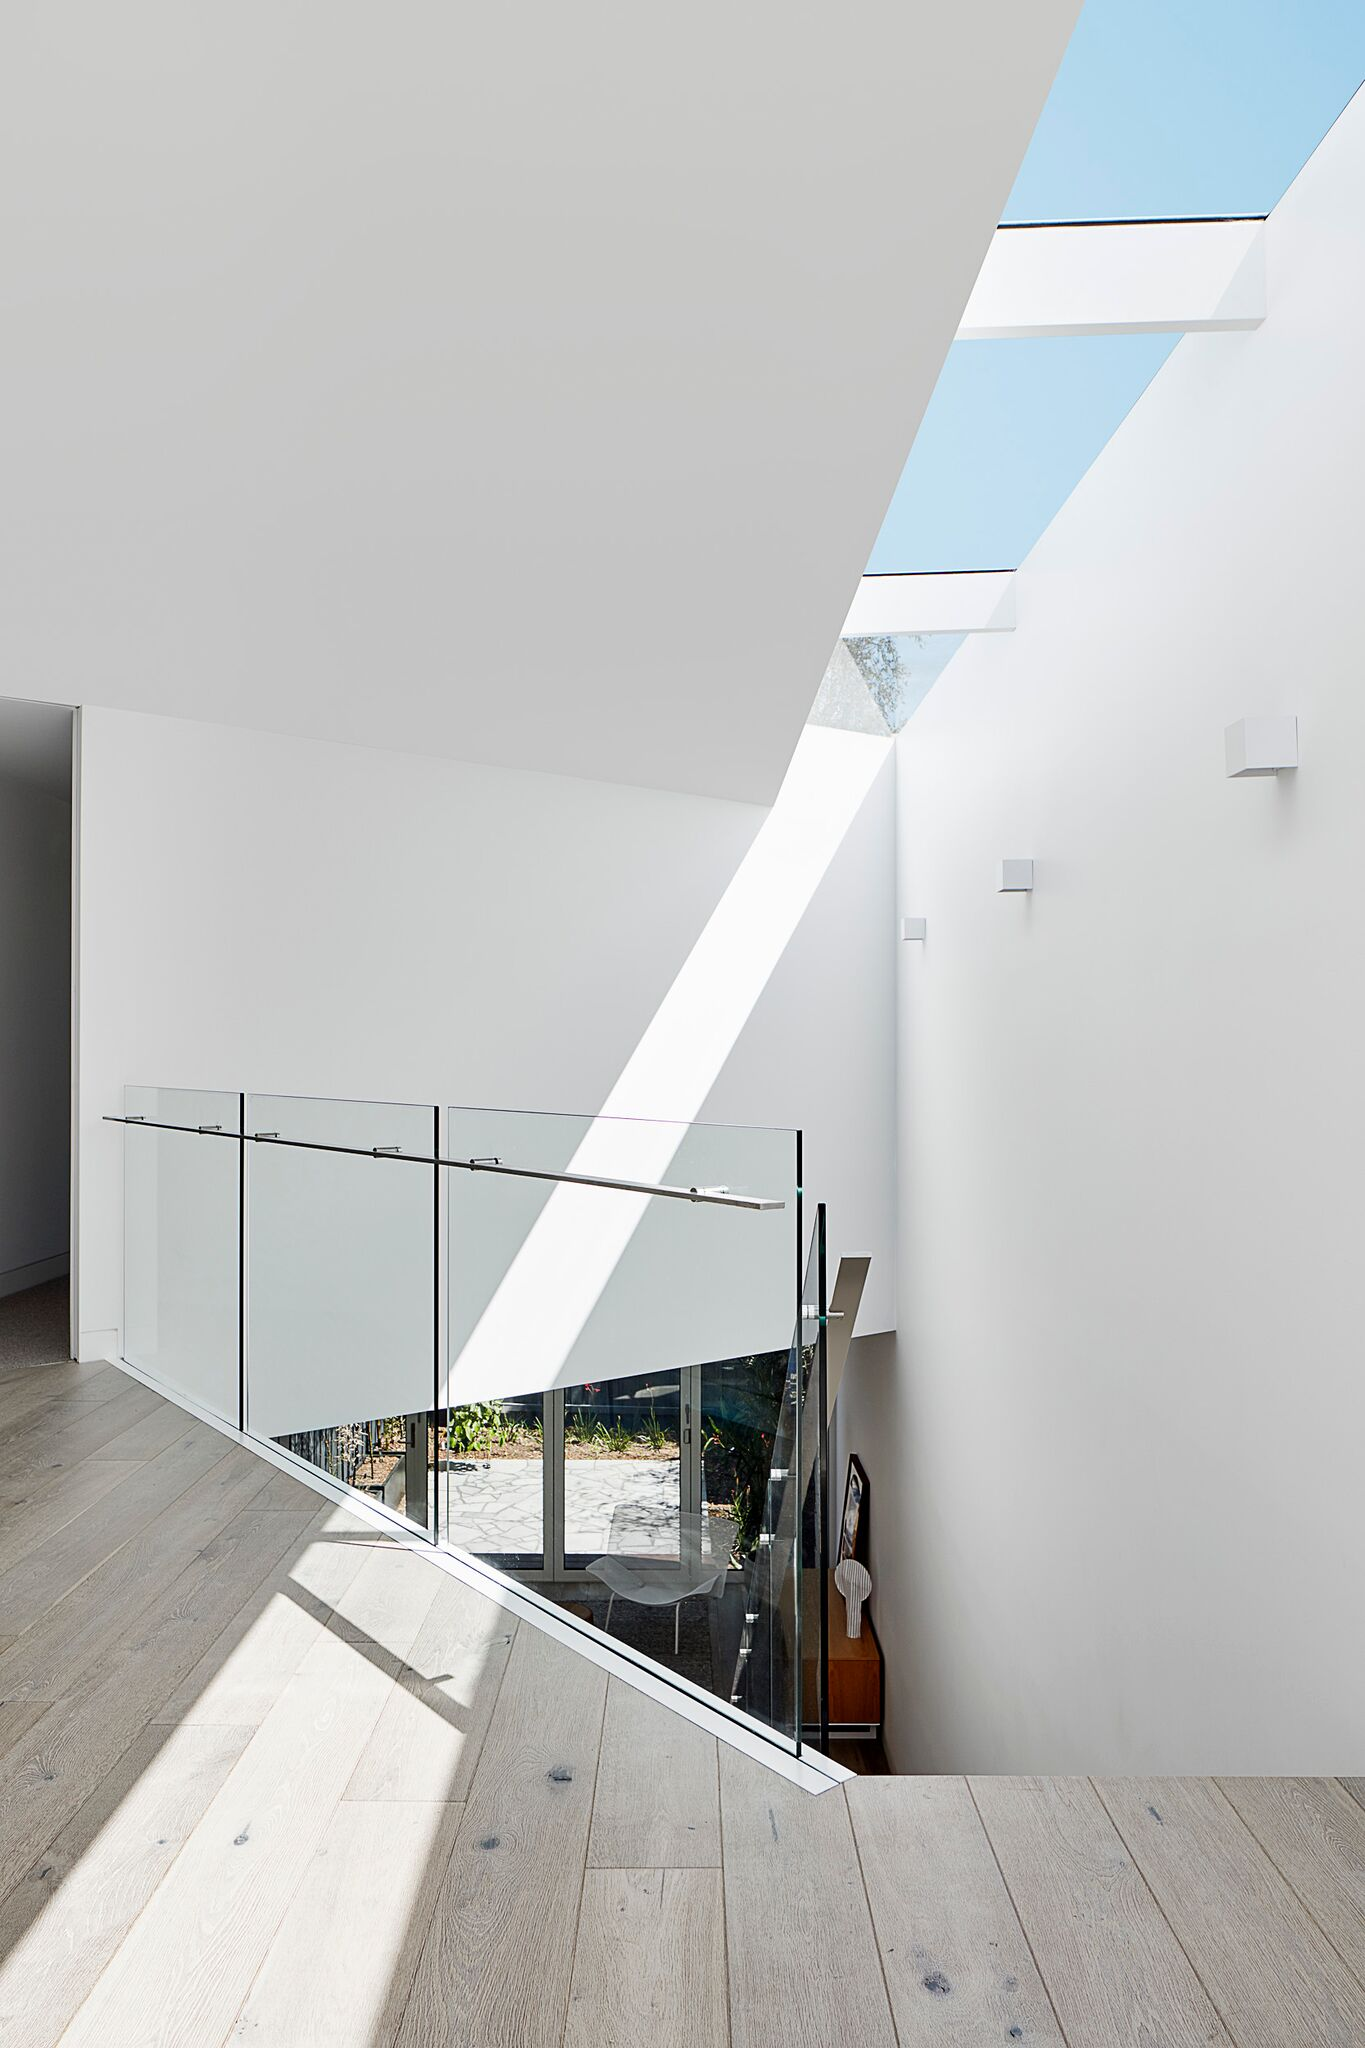 Gallery Of Oban Street By Mittelman Amsellem Architects Local Australian Design & Interiors South Yarra, Melbourne Image 6